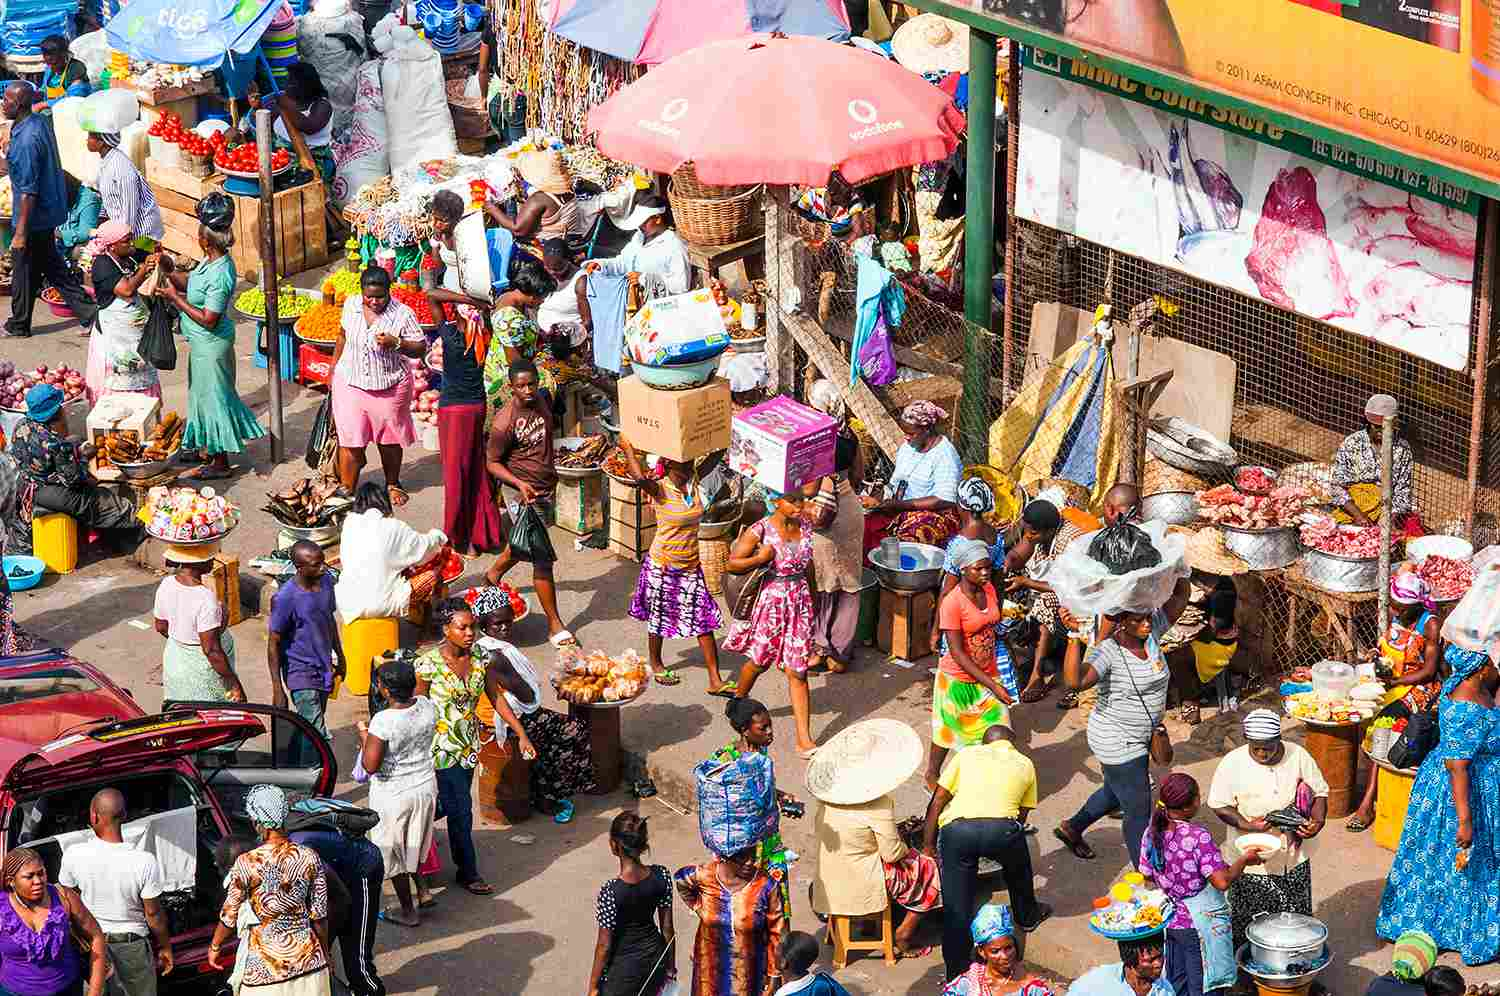 Aerial view of a busy street market in Ghana.